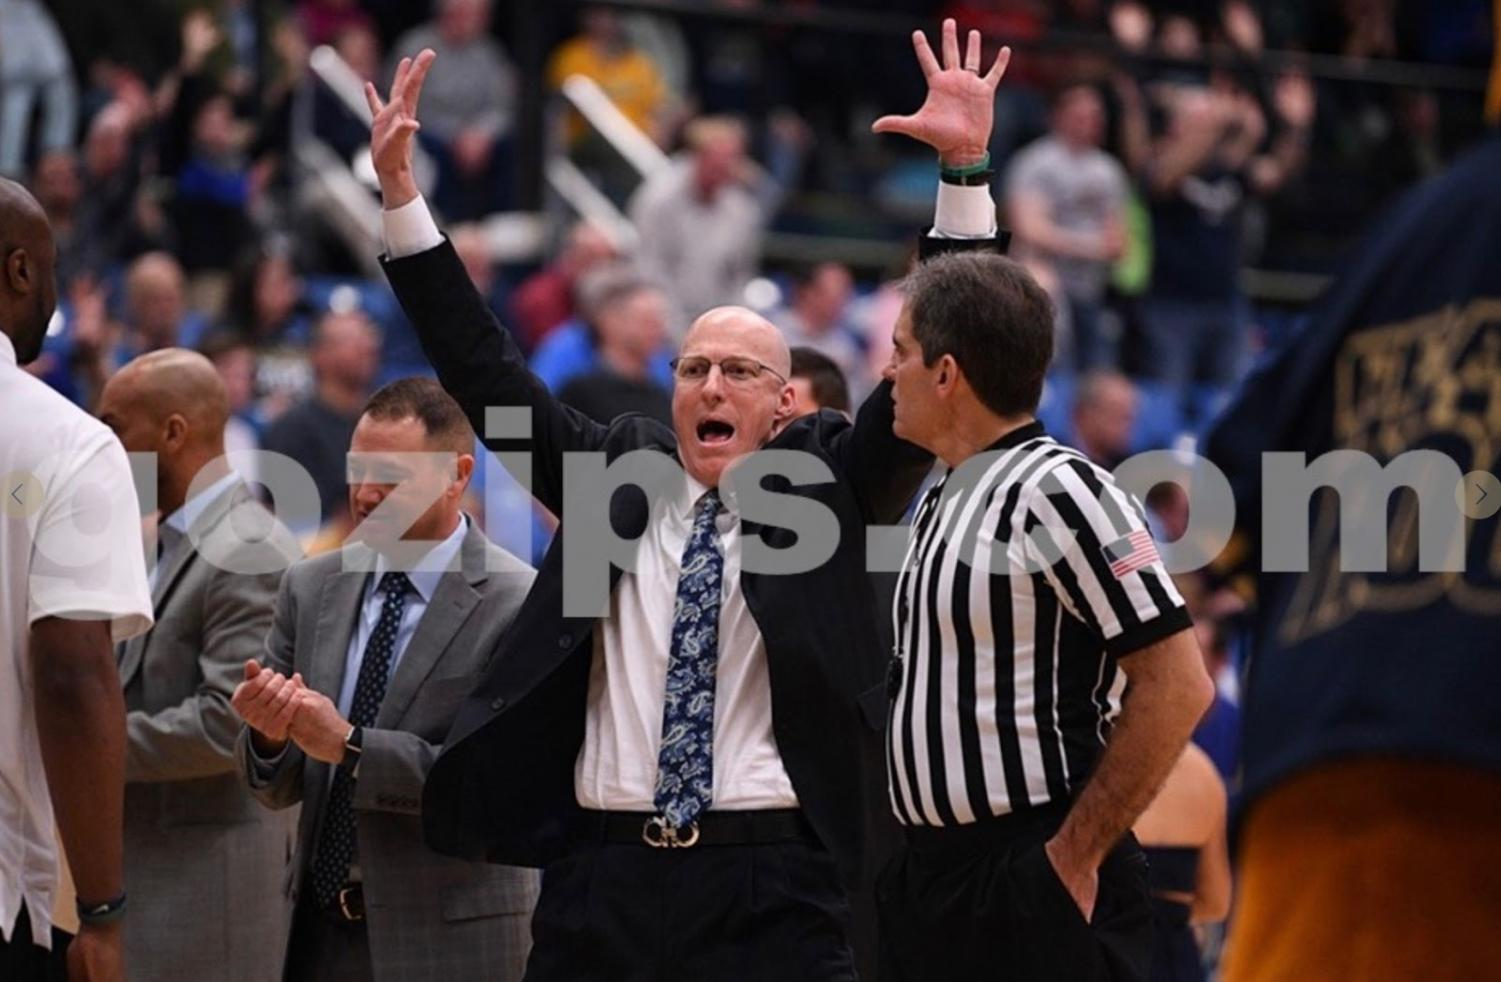 Coach Groce celebrating the Zips comeback during the first half. (Photo courtesy of Akron Athletics)